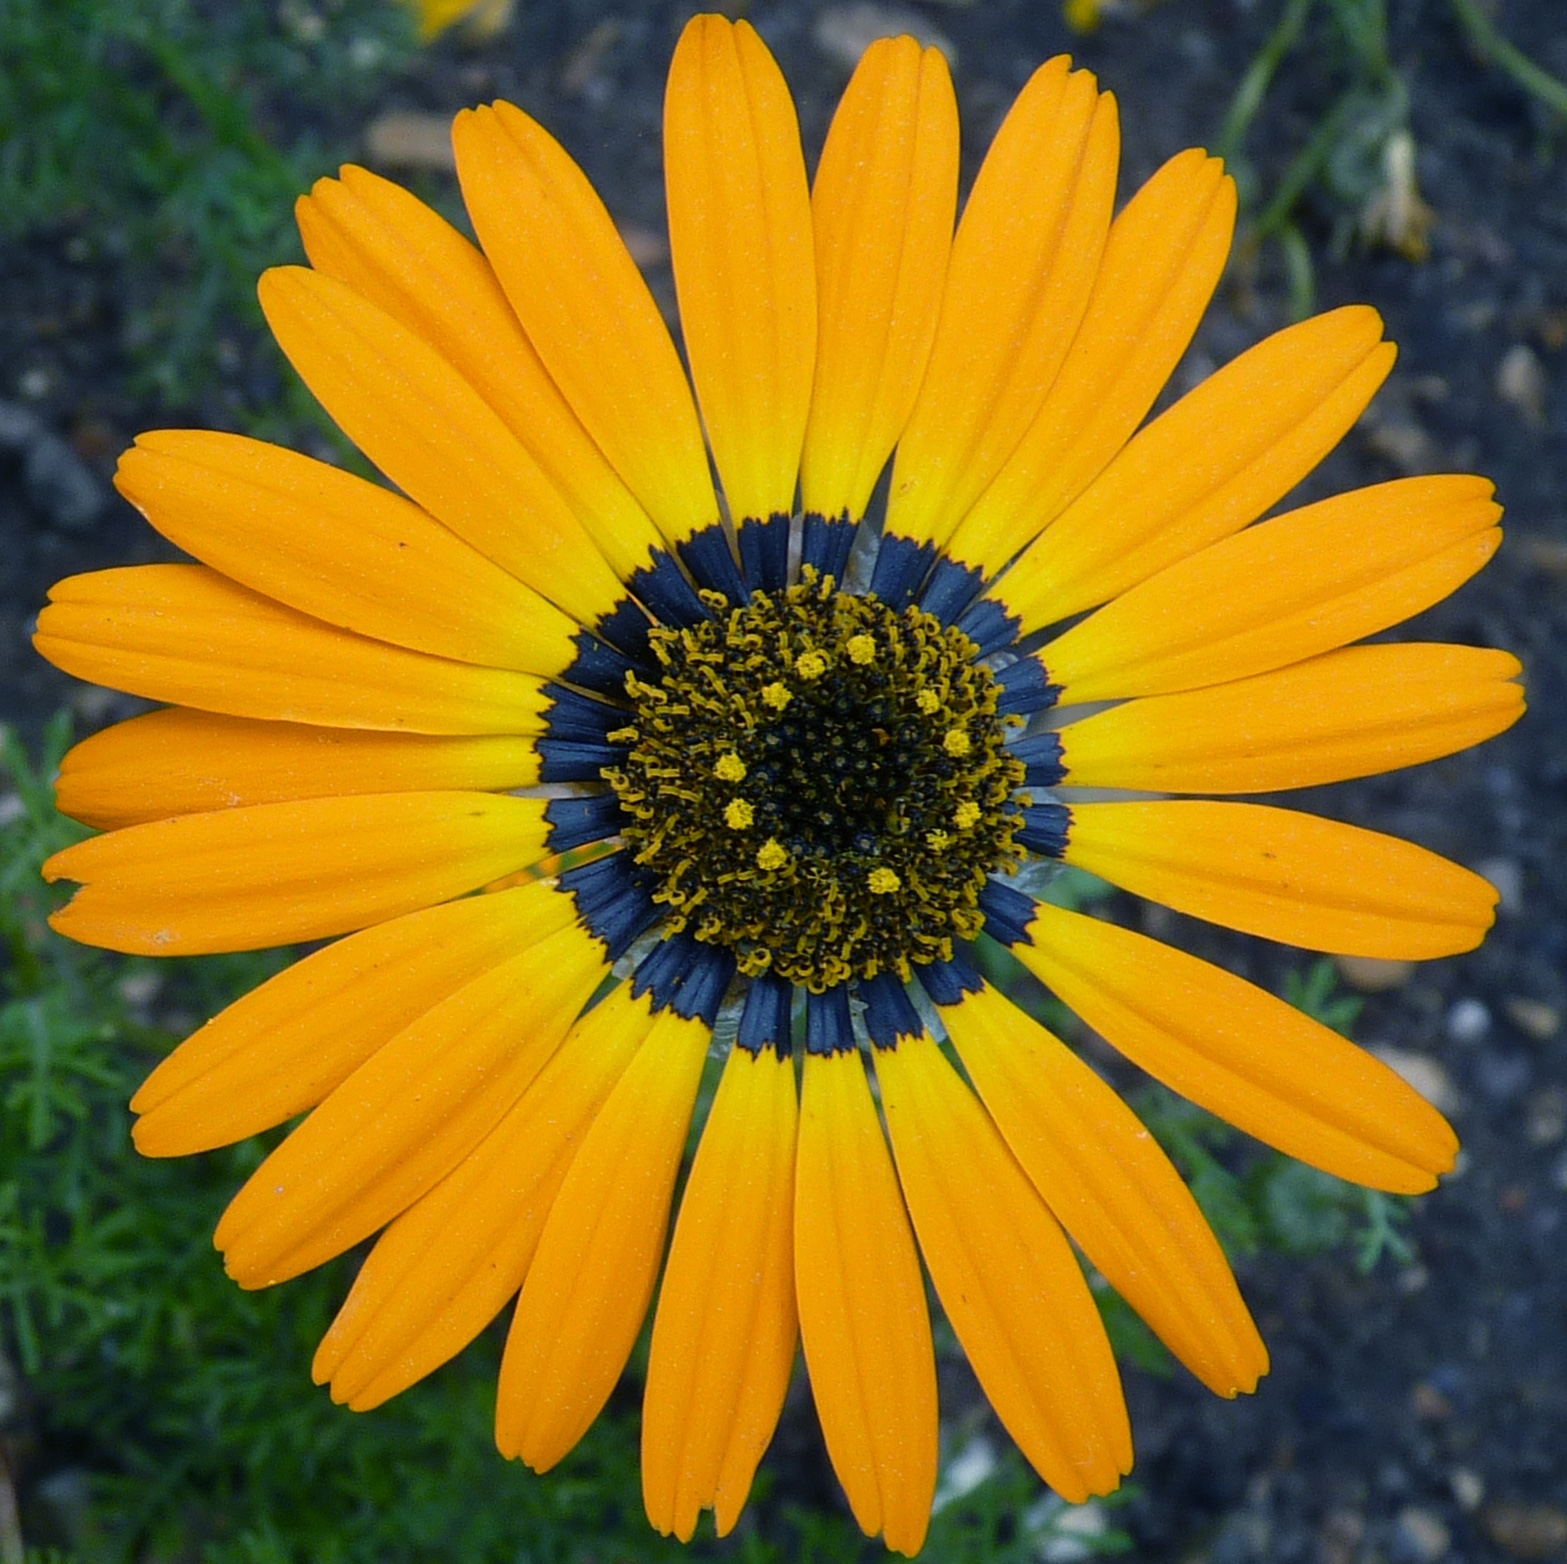 Flowers With Halos, Asexual Worms, Vicious Tadpoles and Other Amazing Animals